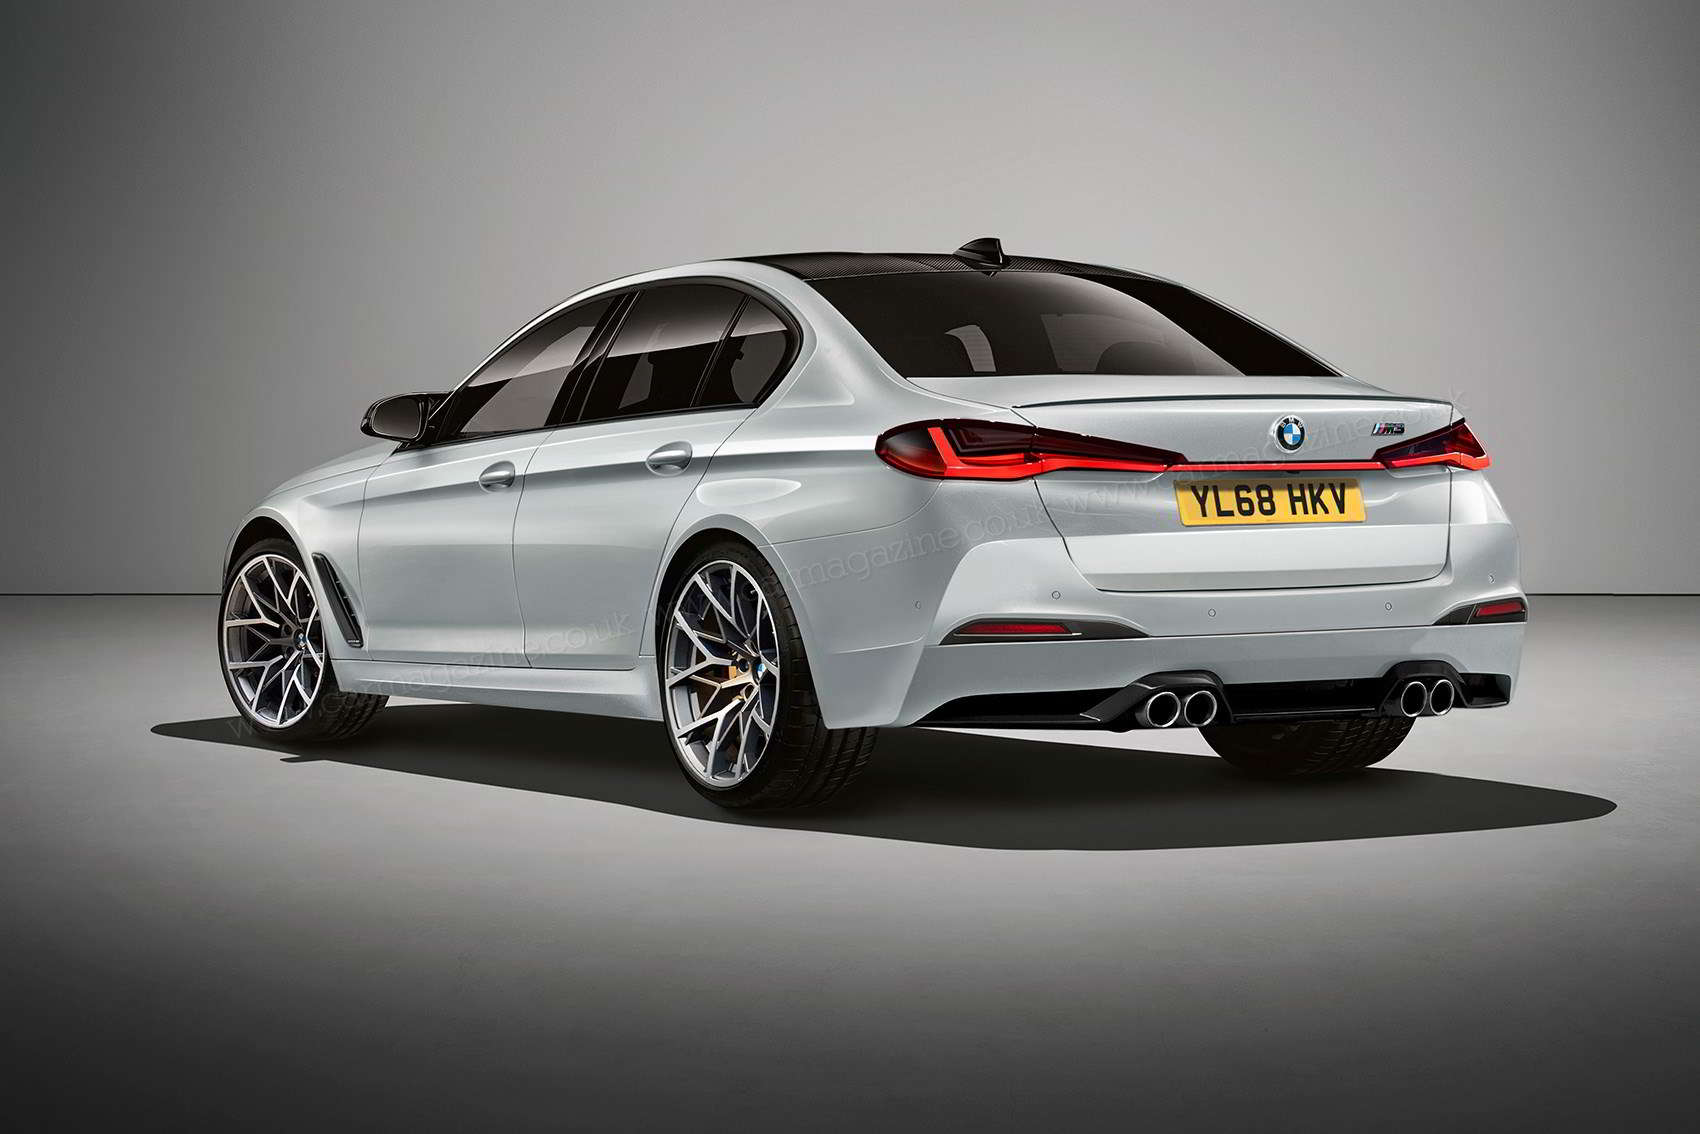 98 The Best When Is The 2020 BMW 5 Series Coming Out Rumors